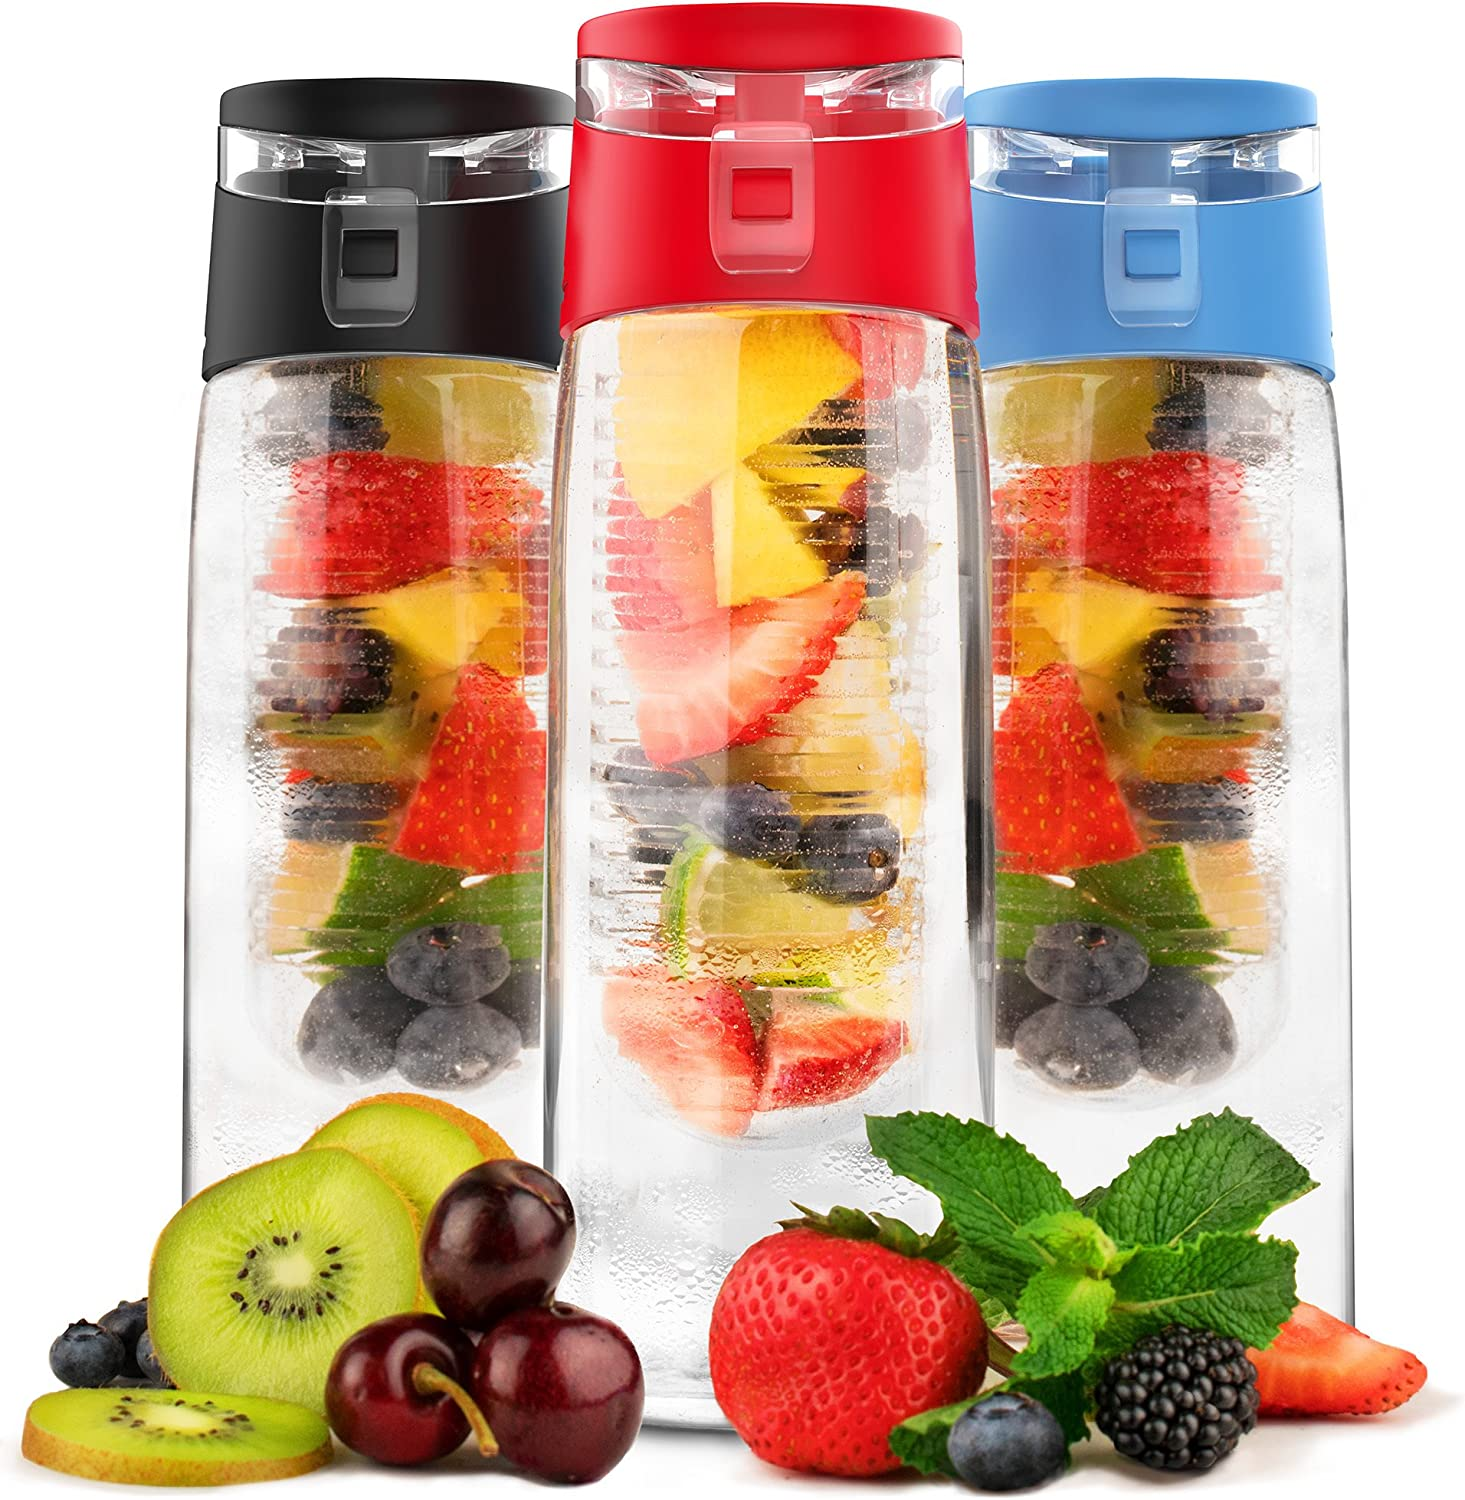 Vremi 24 Oz Fruit Infused Water Bottle - BPA Free Sports Water Bottle with Fruit Infuser Filter and Flip Top Lid Cap - Large Tritan Plastic Eco Drinking Clear Reusable Travel Water Bottles